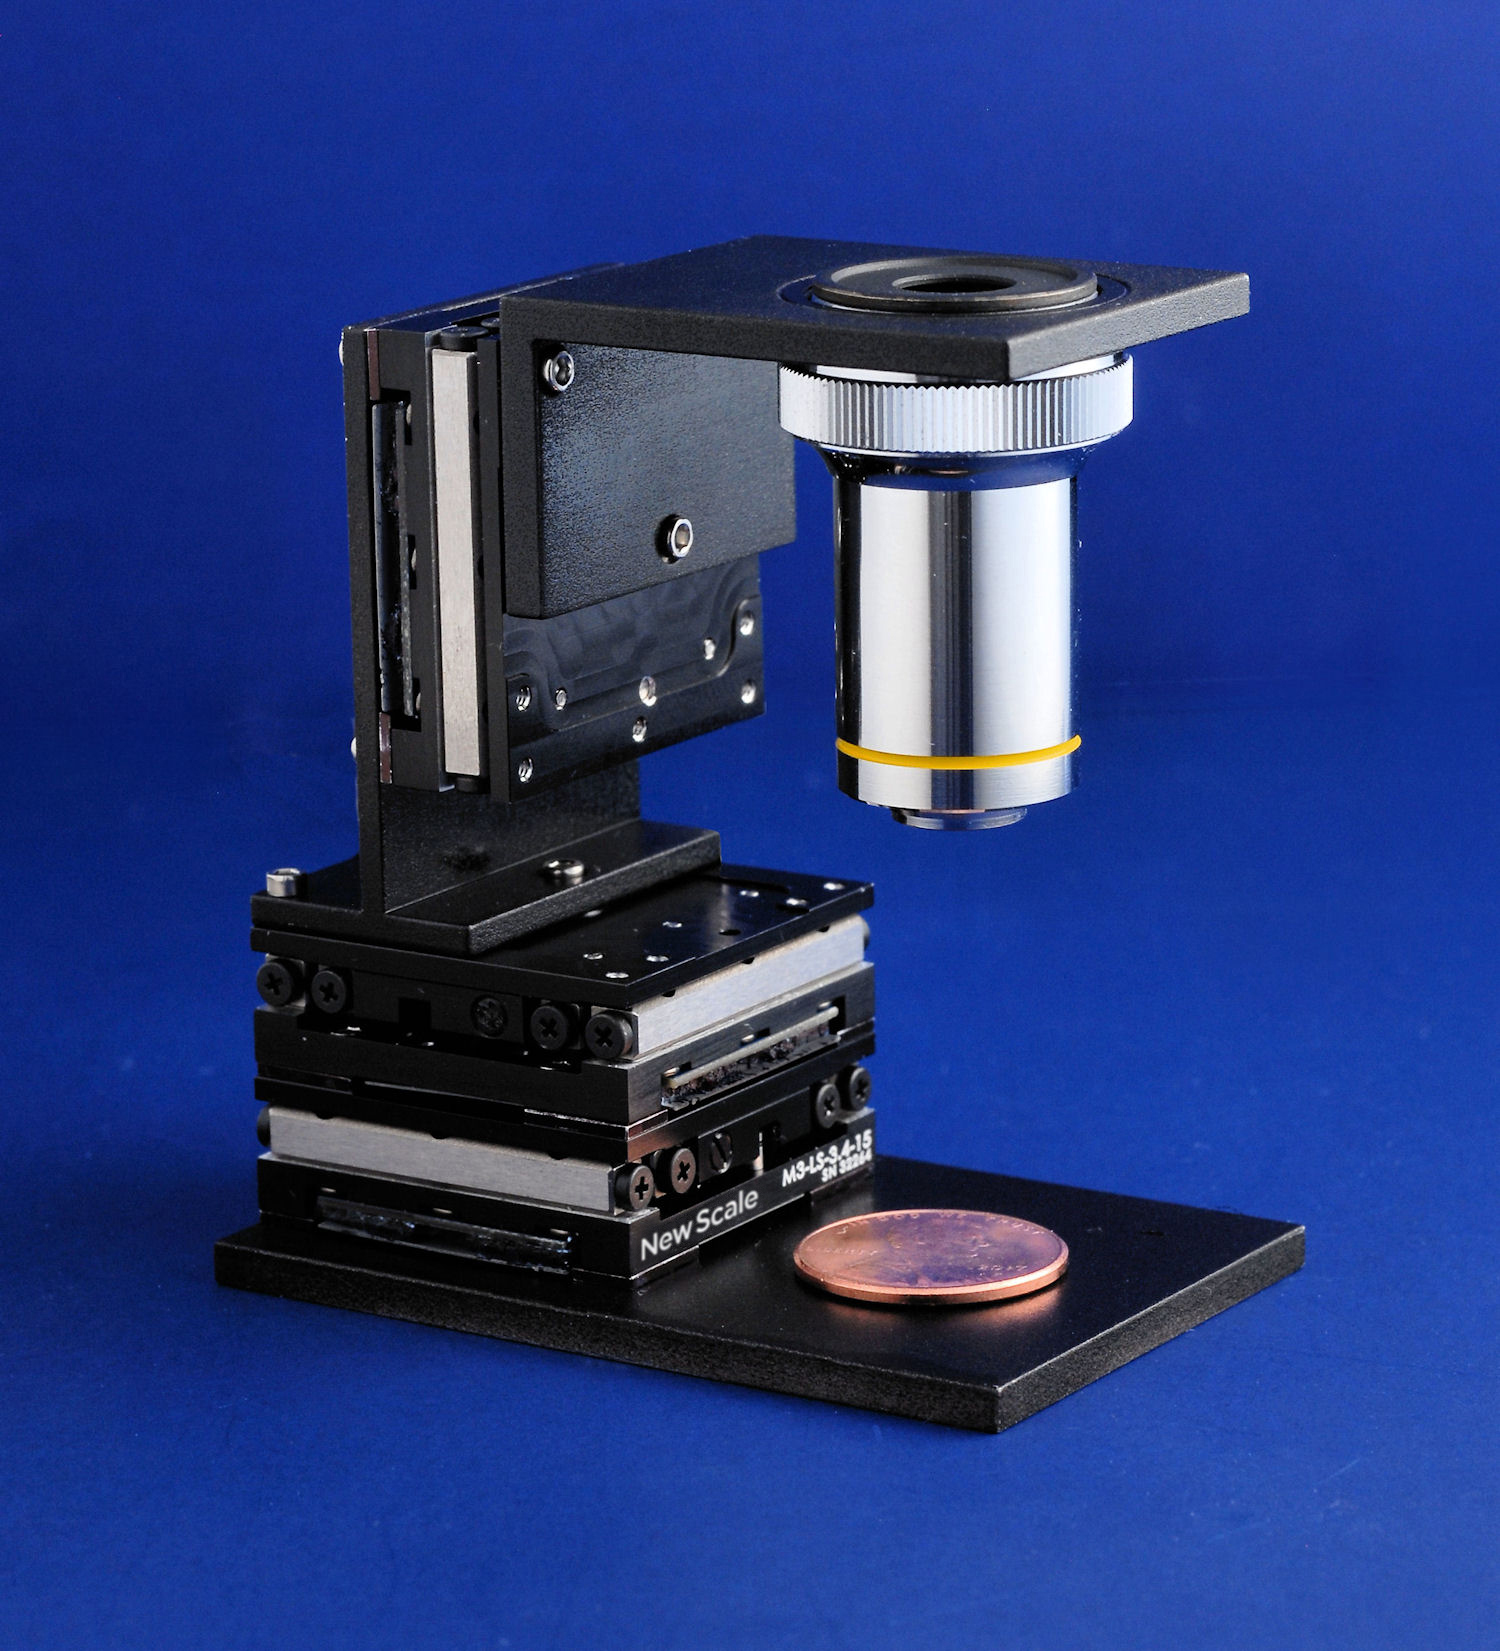 M3-LS-3.4 Linear Smart Stage three-axis (XYZ) configuration with microscope objective